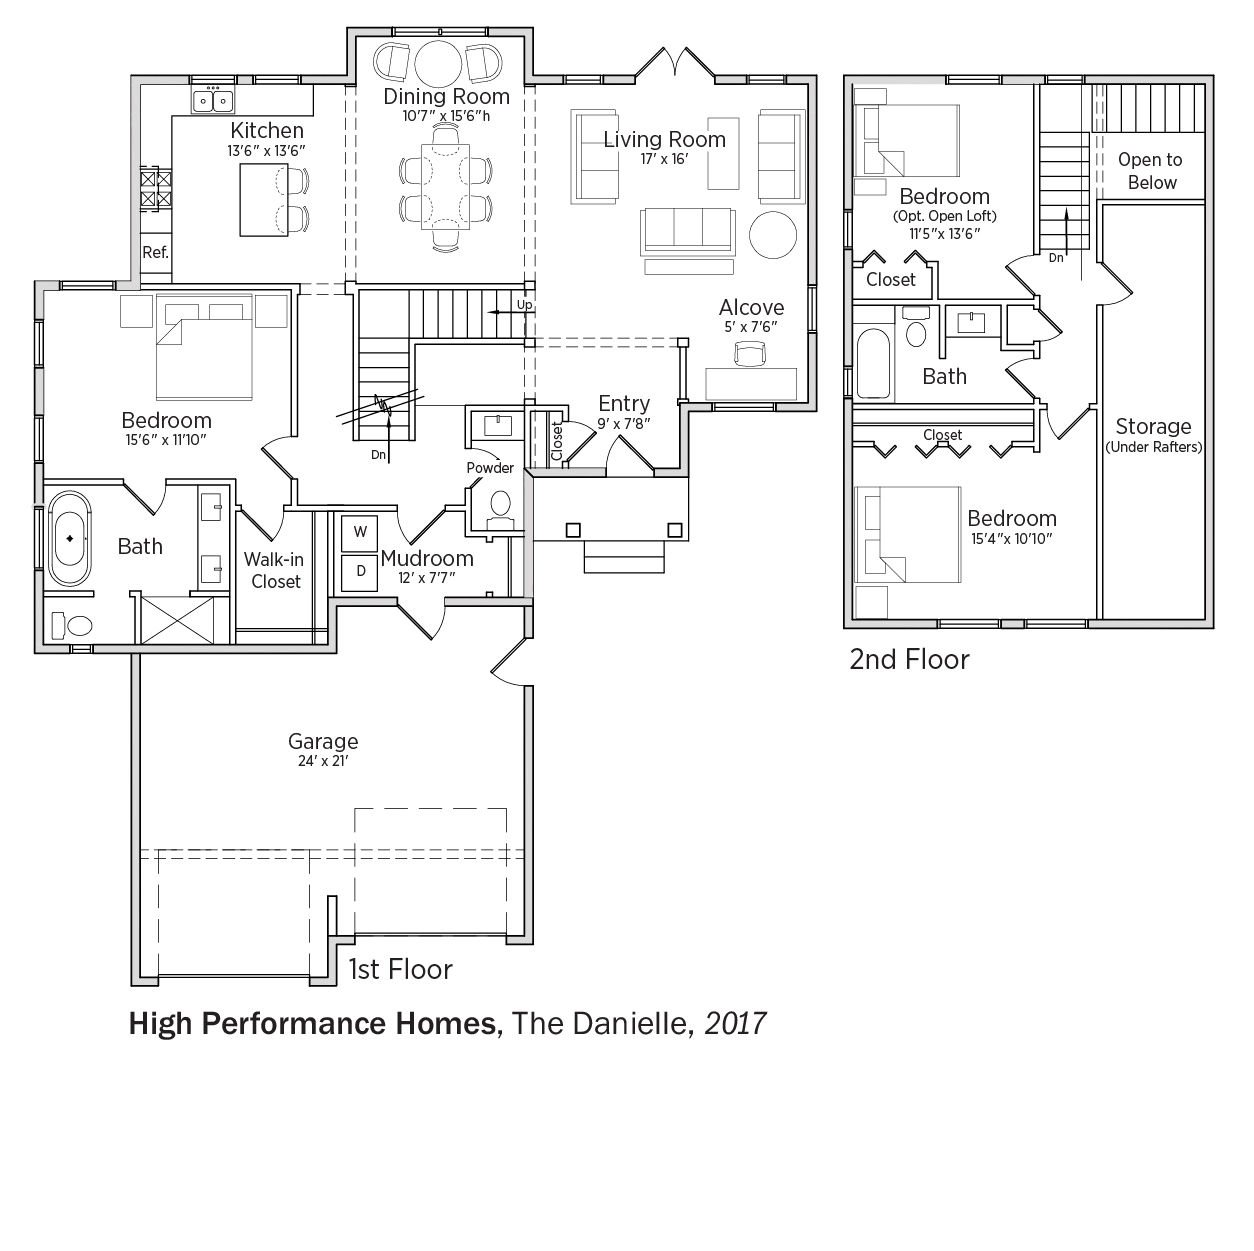 Floorplans For The Danielle By High Performance Homes